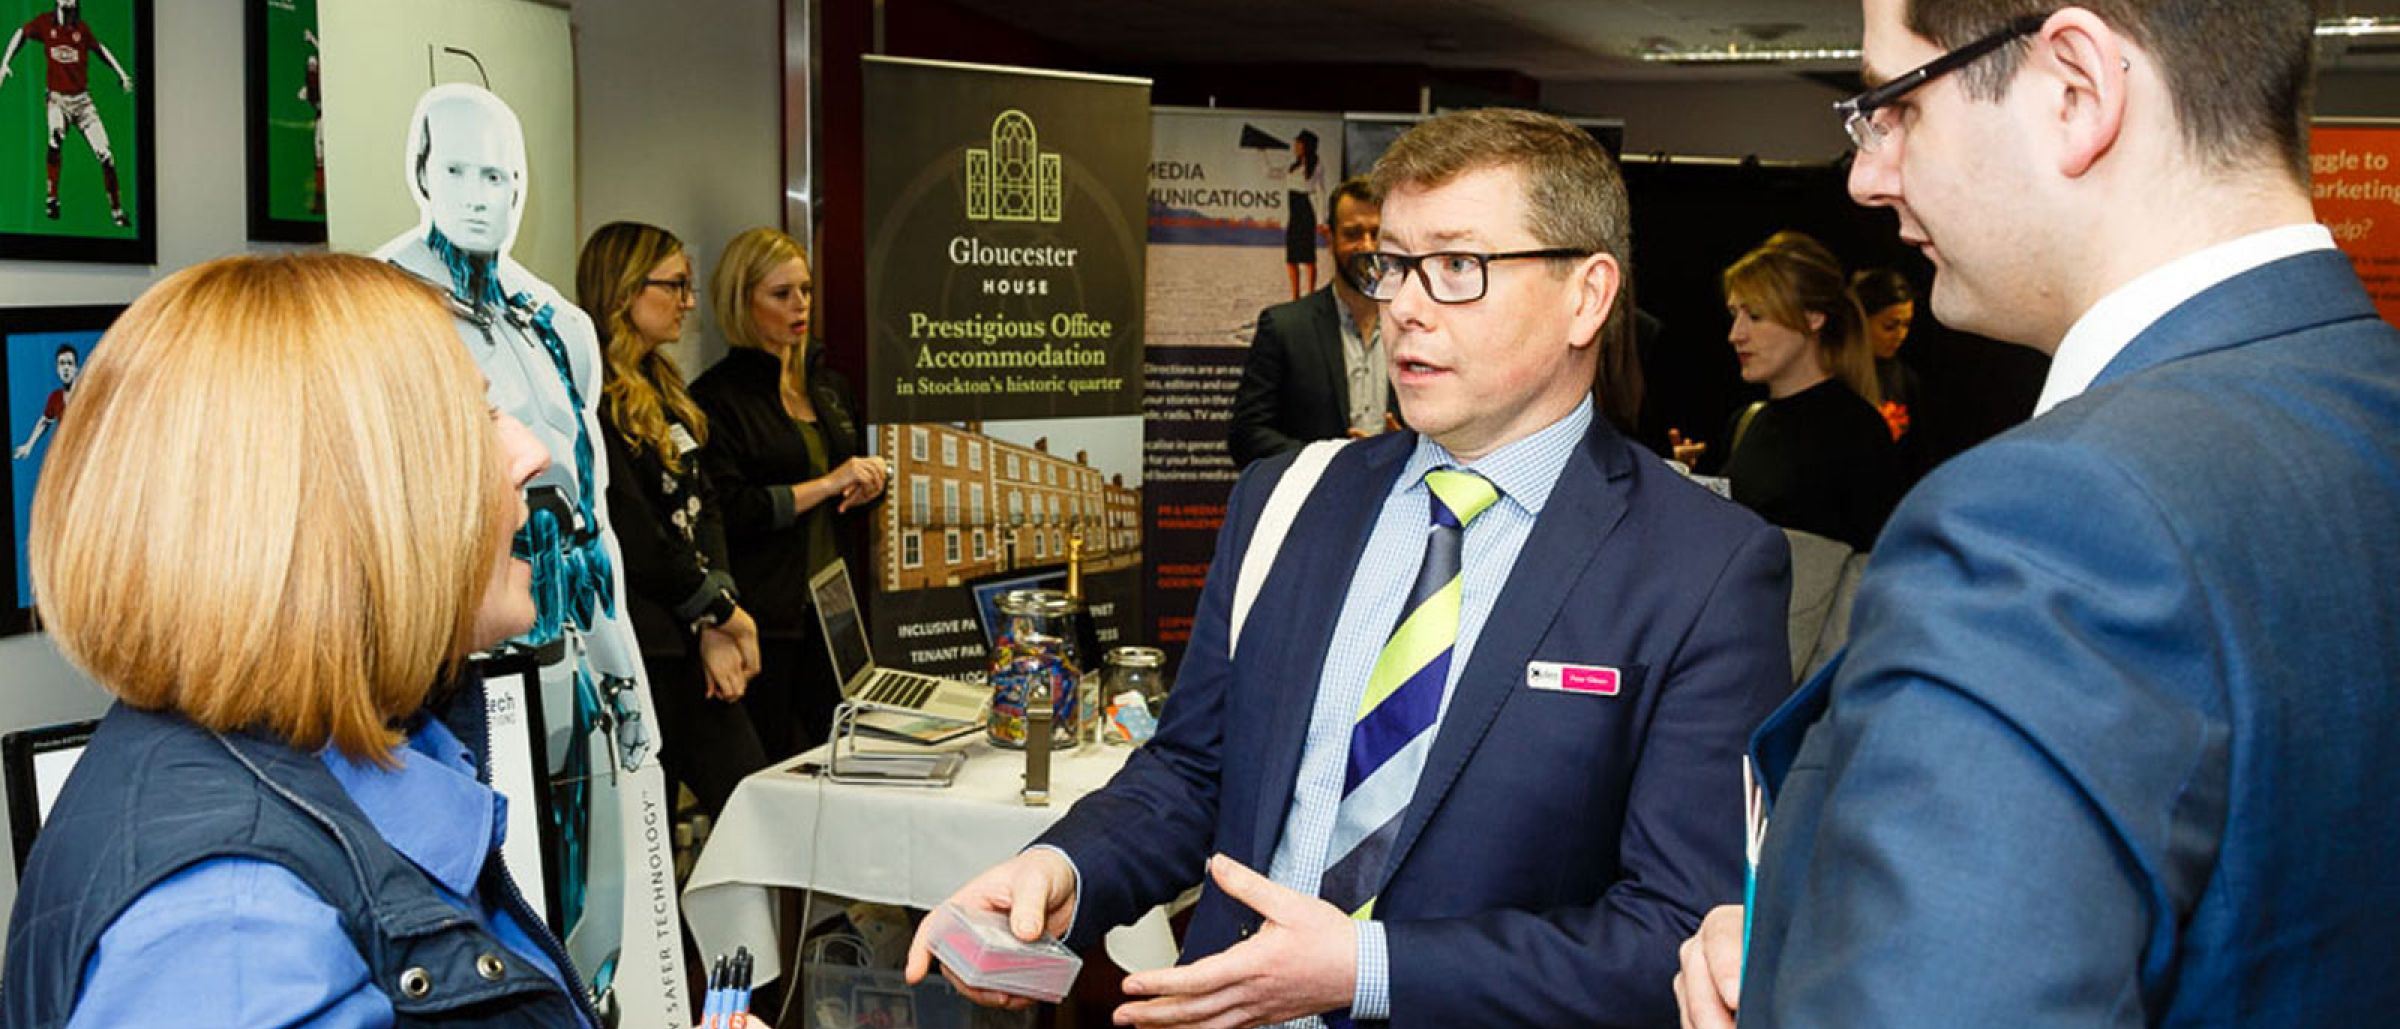 Conference and events exhibitions